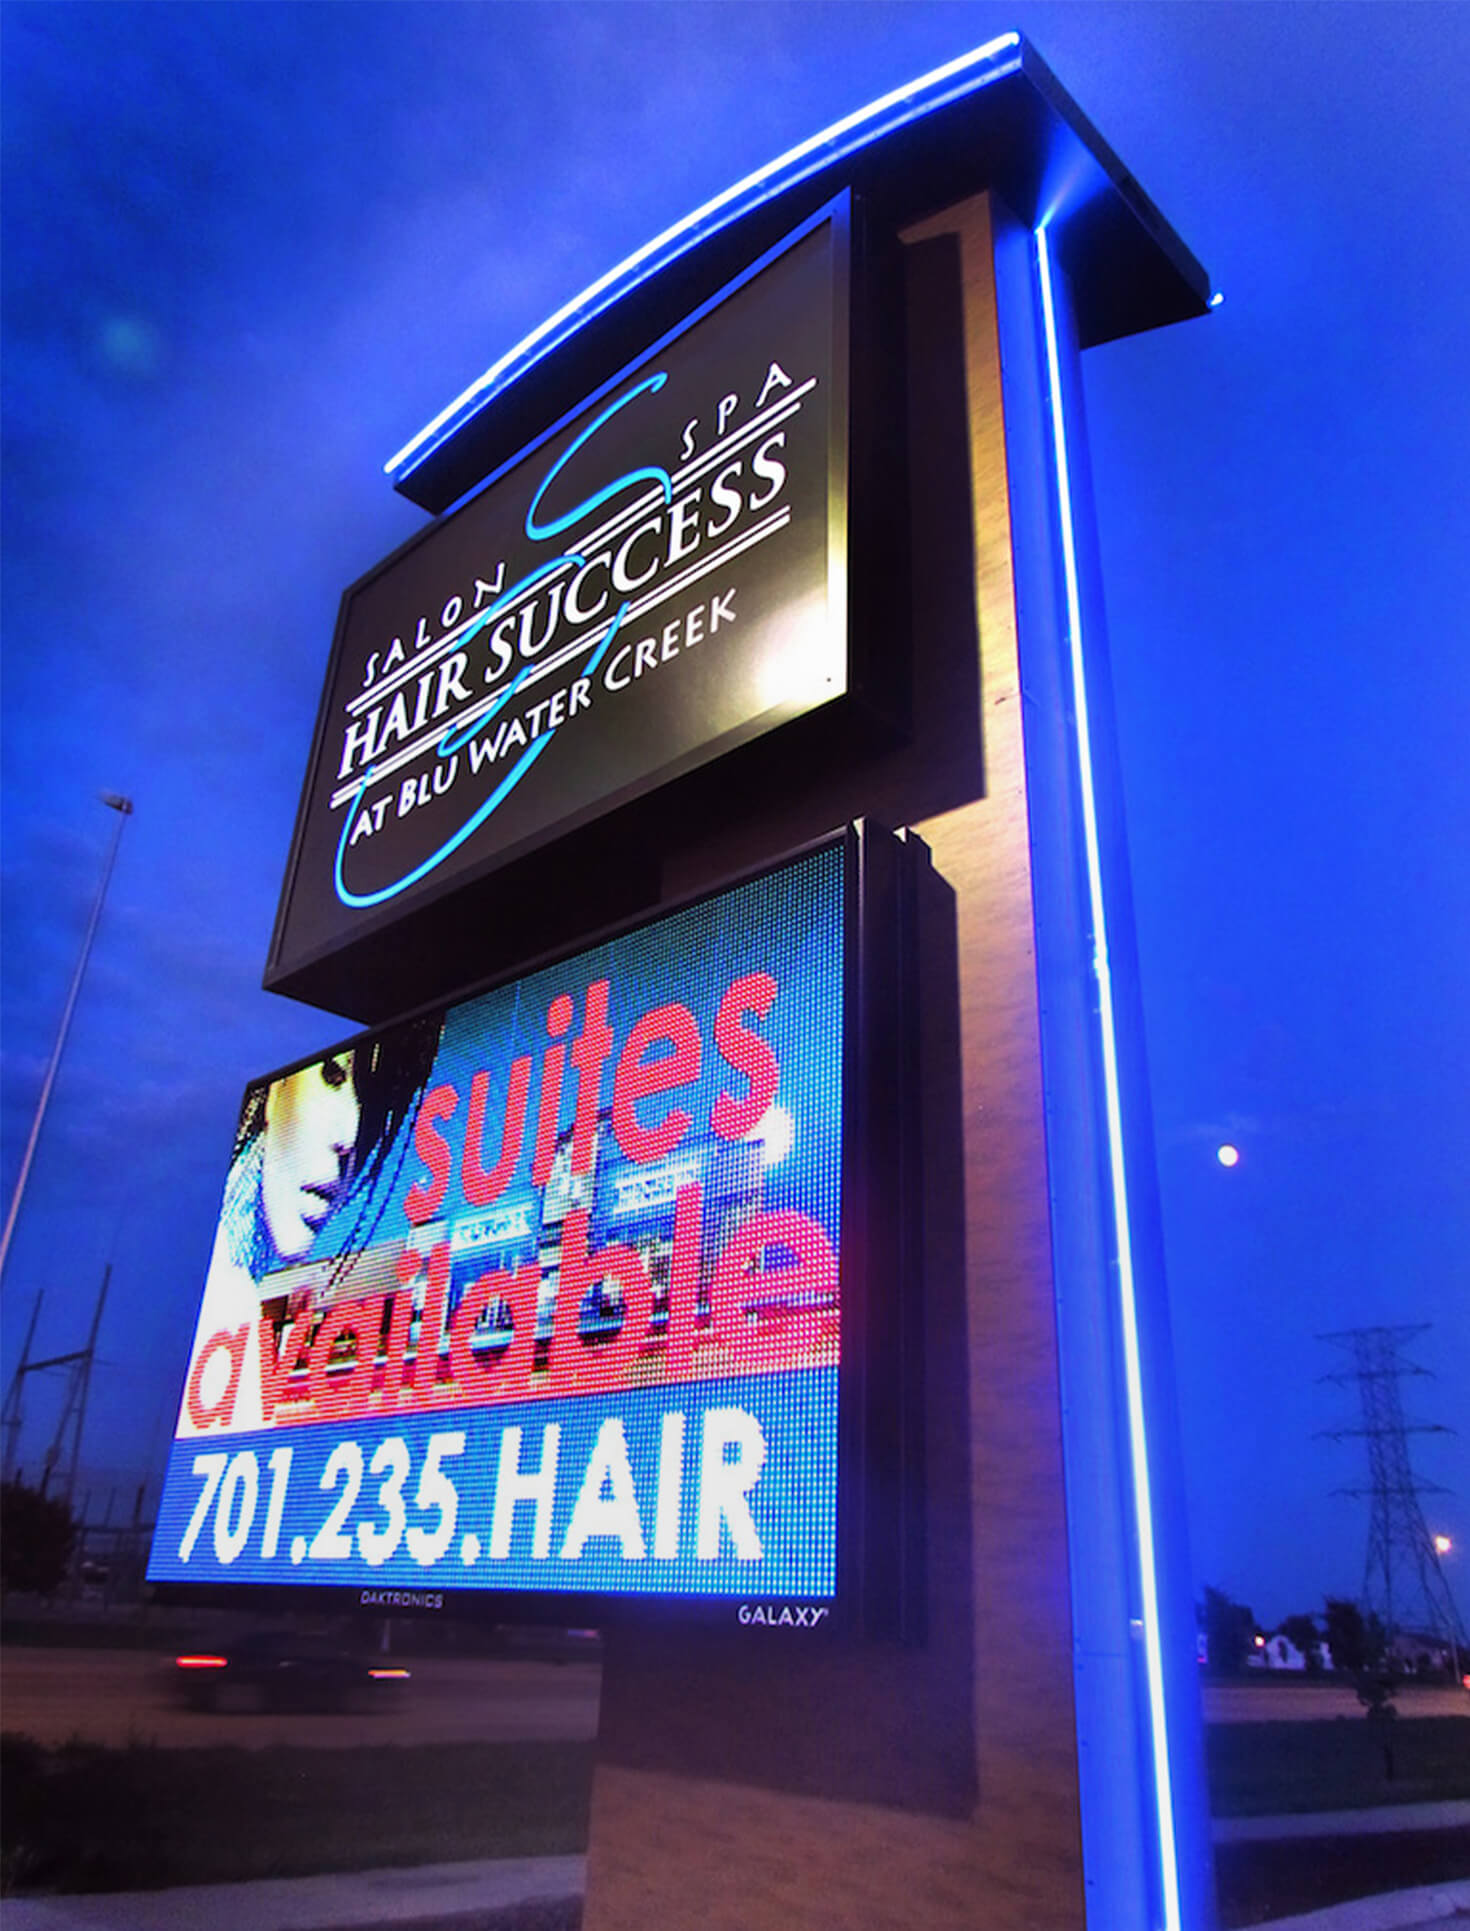 Hair Success at Blu Water Creek Fargo ND Custom Pylon Sign with Accent Blue Lighting and Daktronics EMC